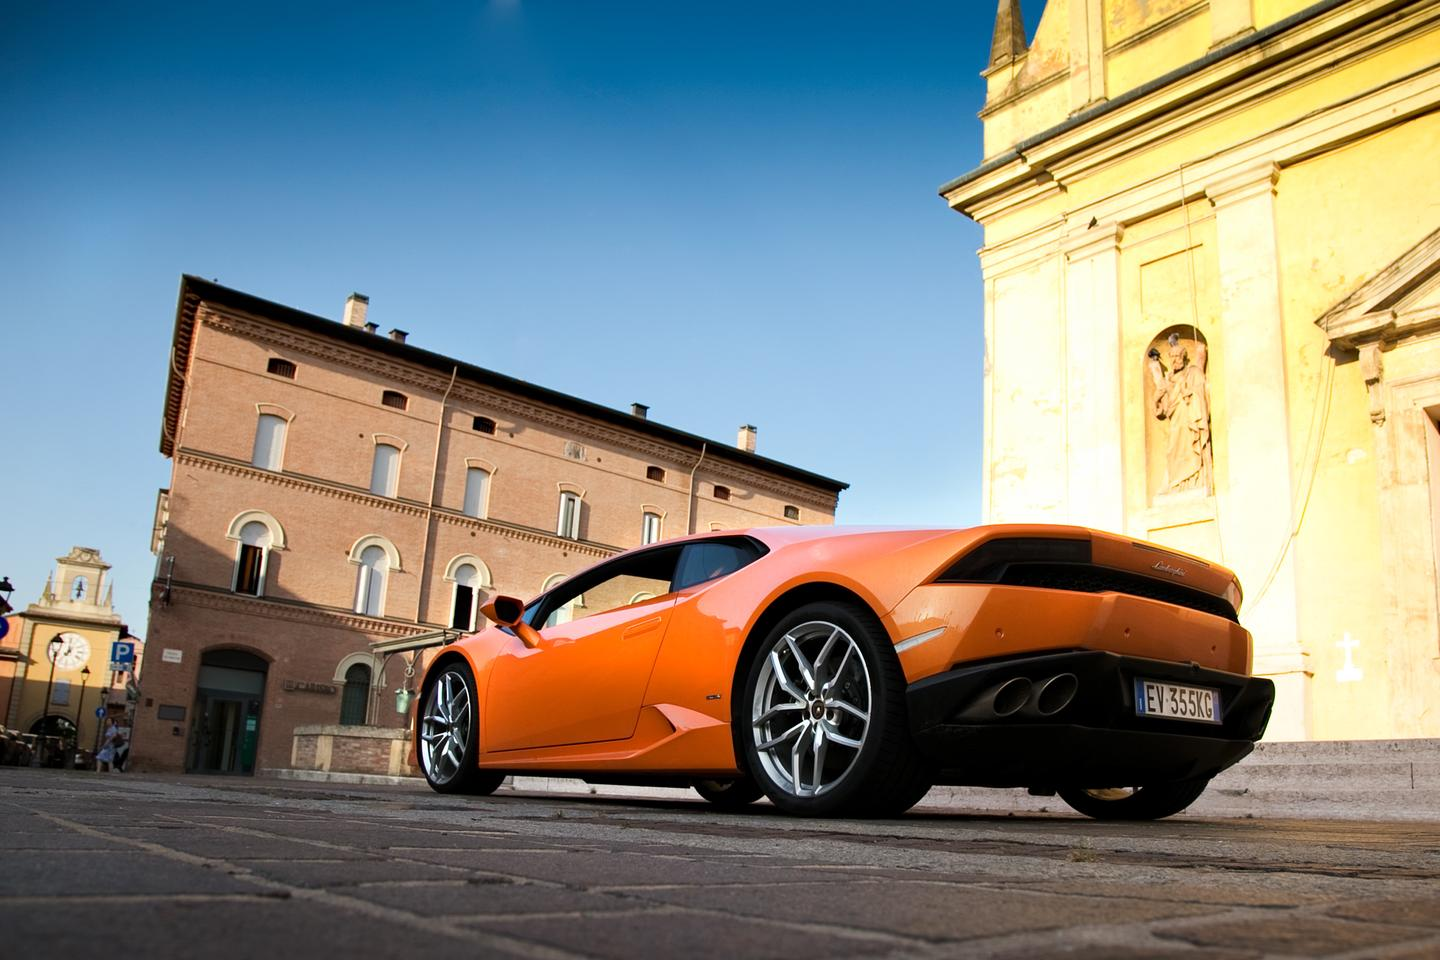 In the two hours of driving about the Bolognese countryside, the Huracán showed itself to be a worthy successor to the Gallardo (Photo: Angus MacKenzie/Gizmag.com)